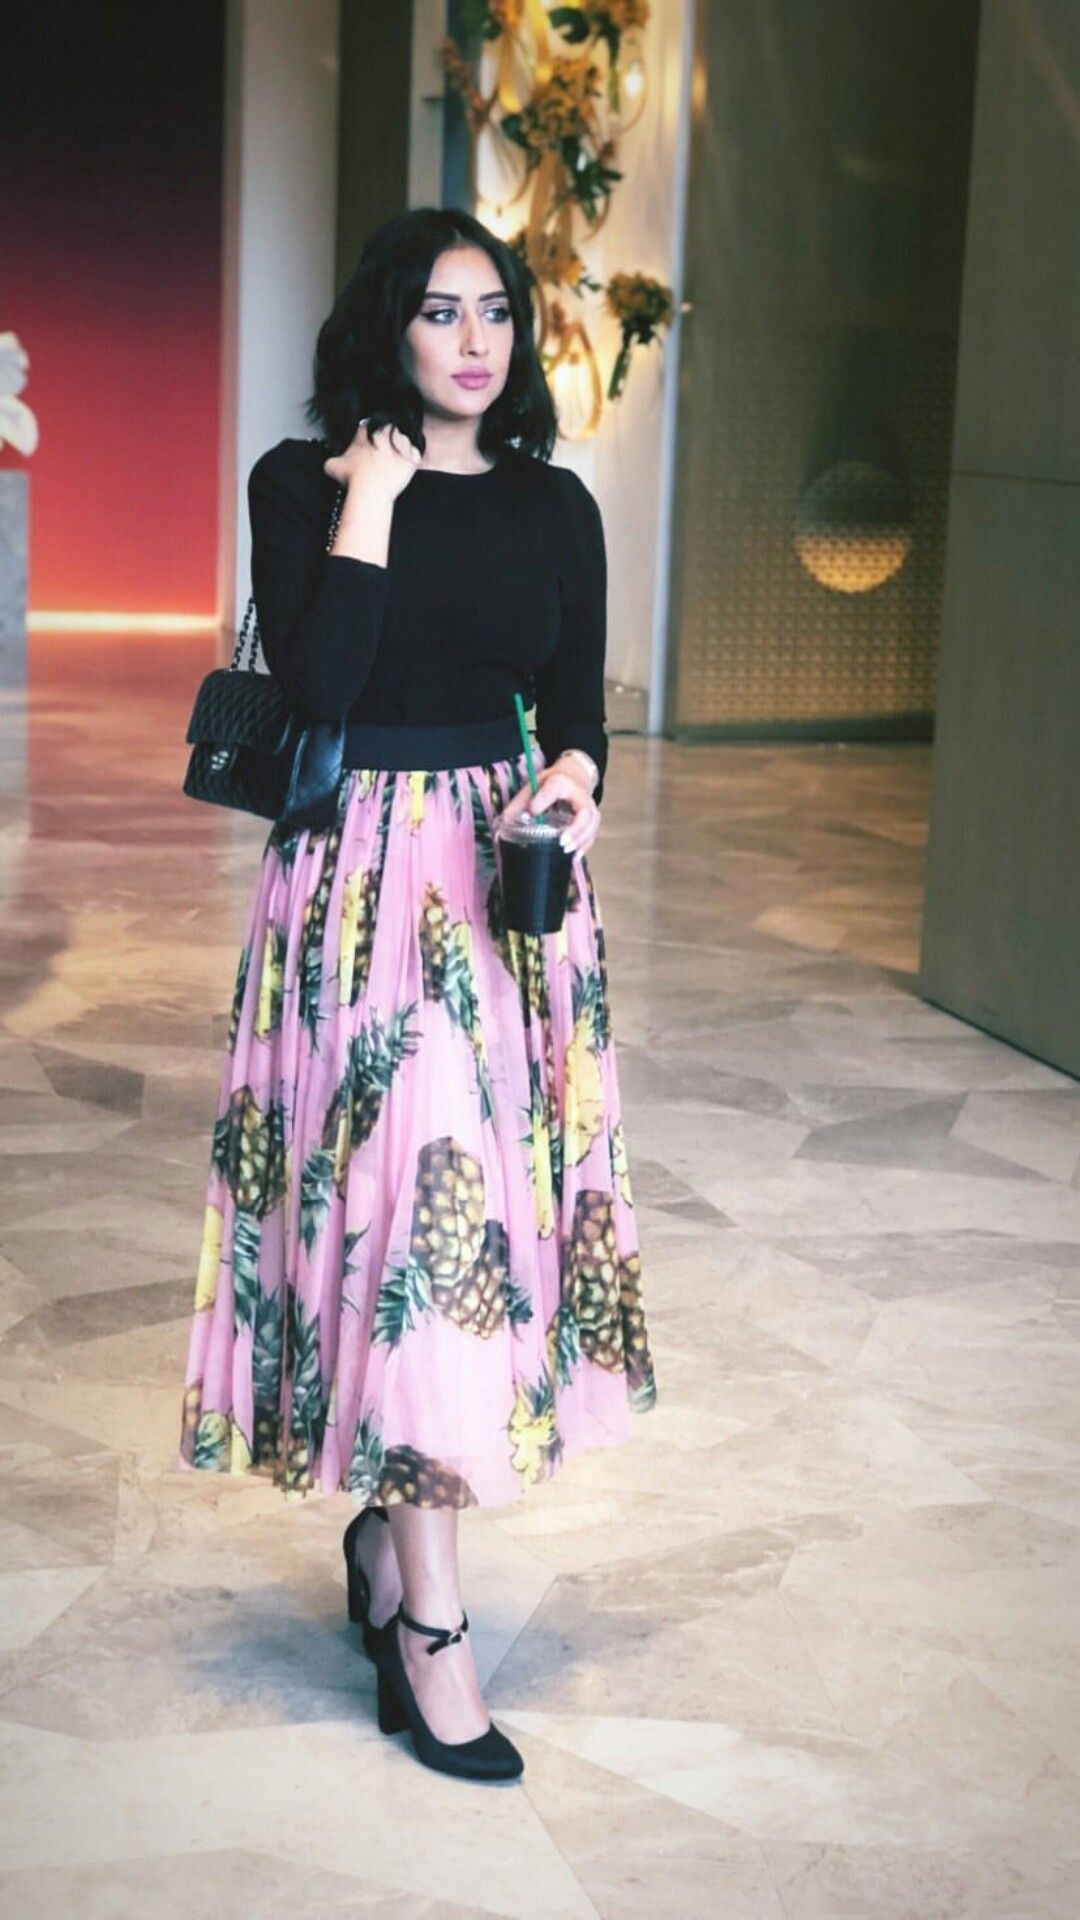 Pin By Nada On فرح الهادي Pretty Outfits Outfits Style